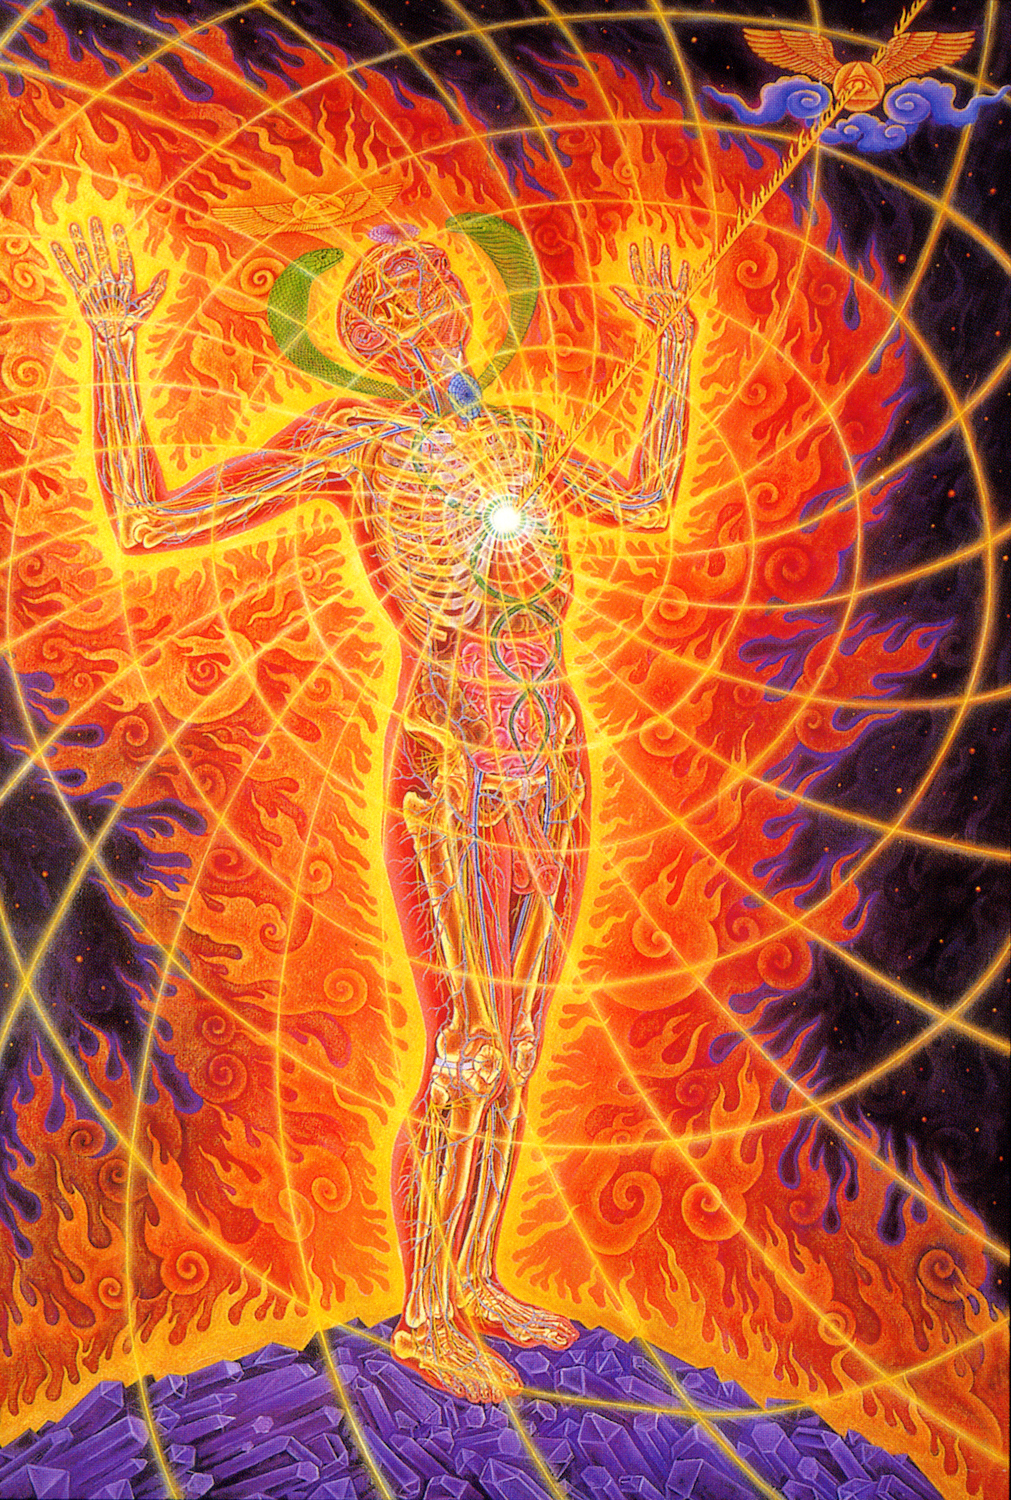 Kundalini energy in the human being